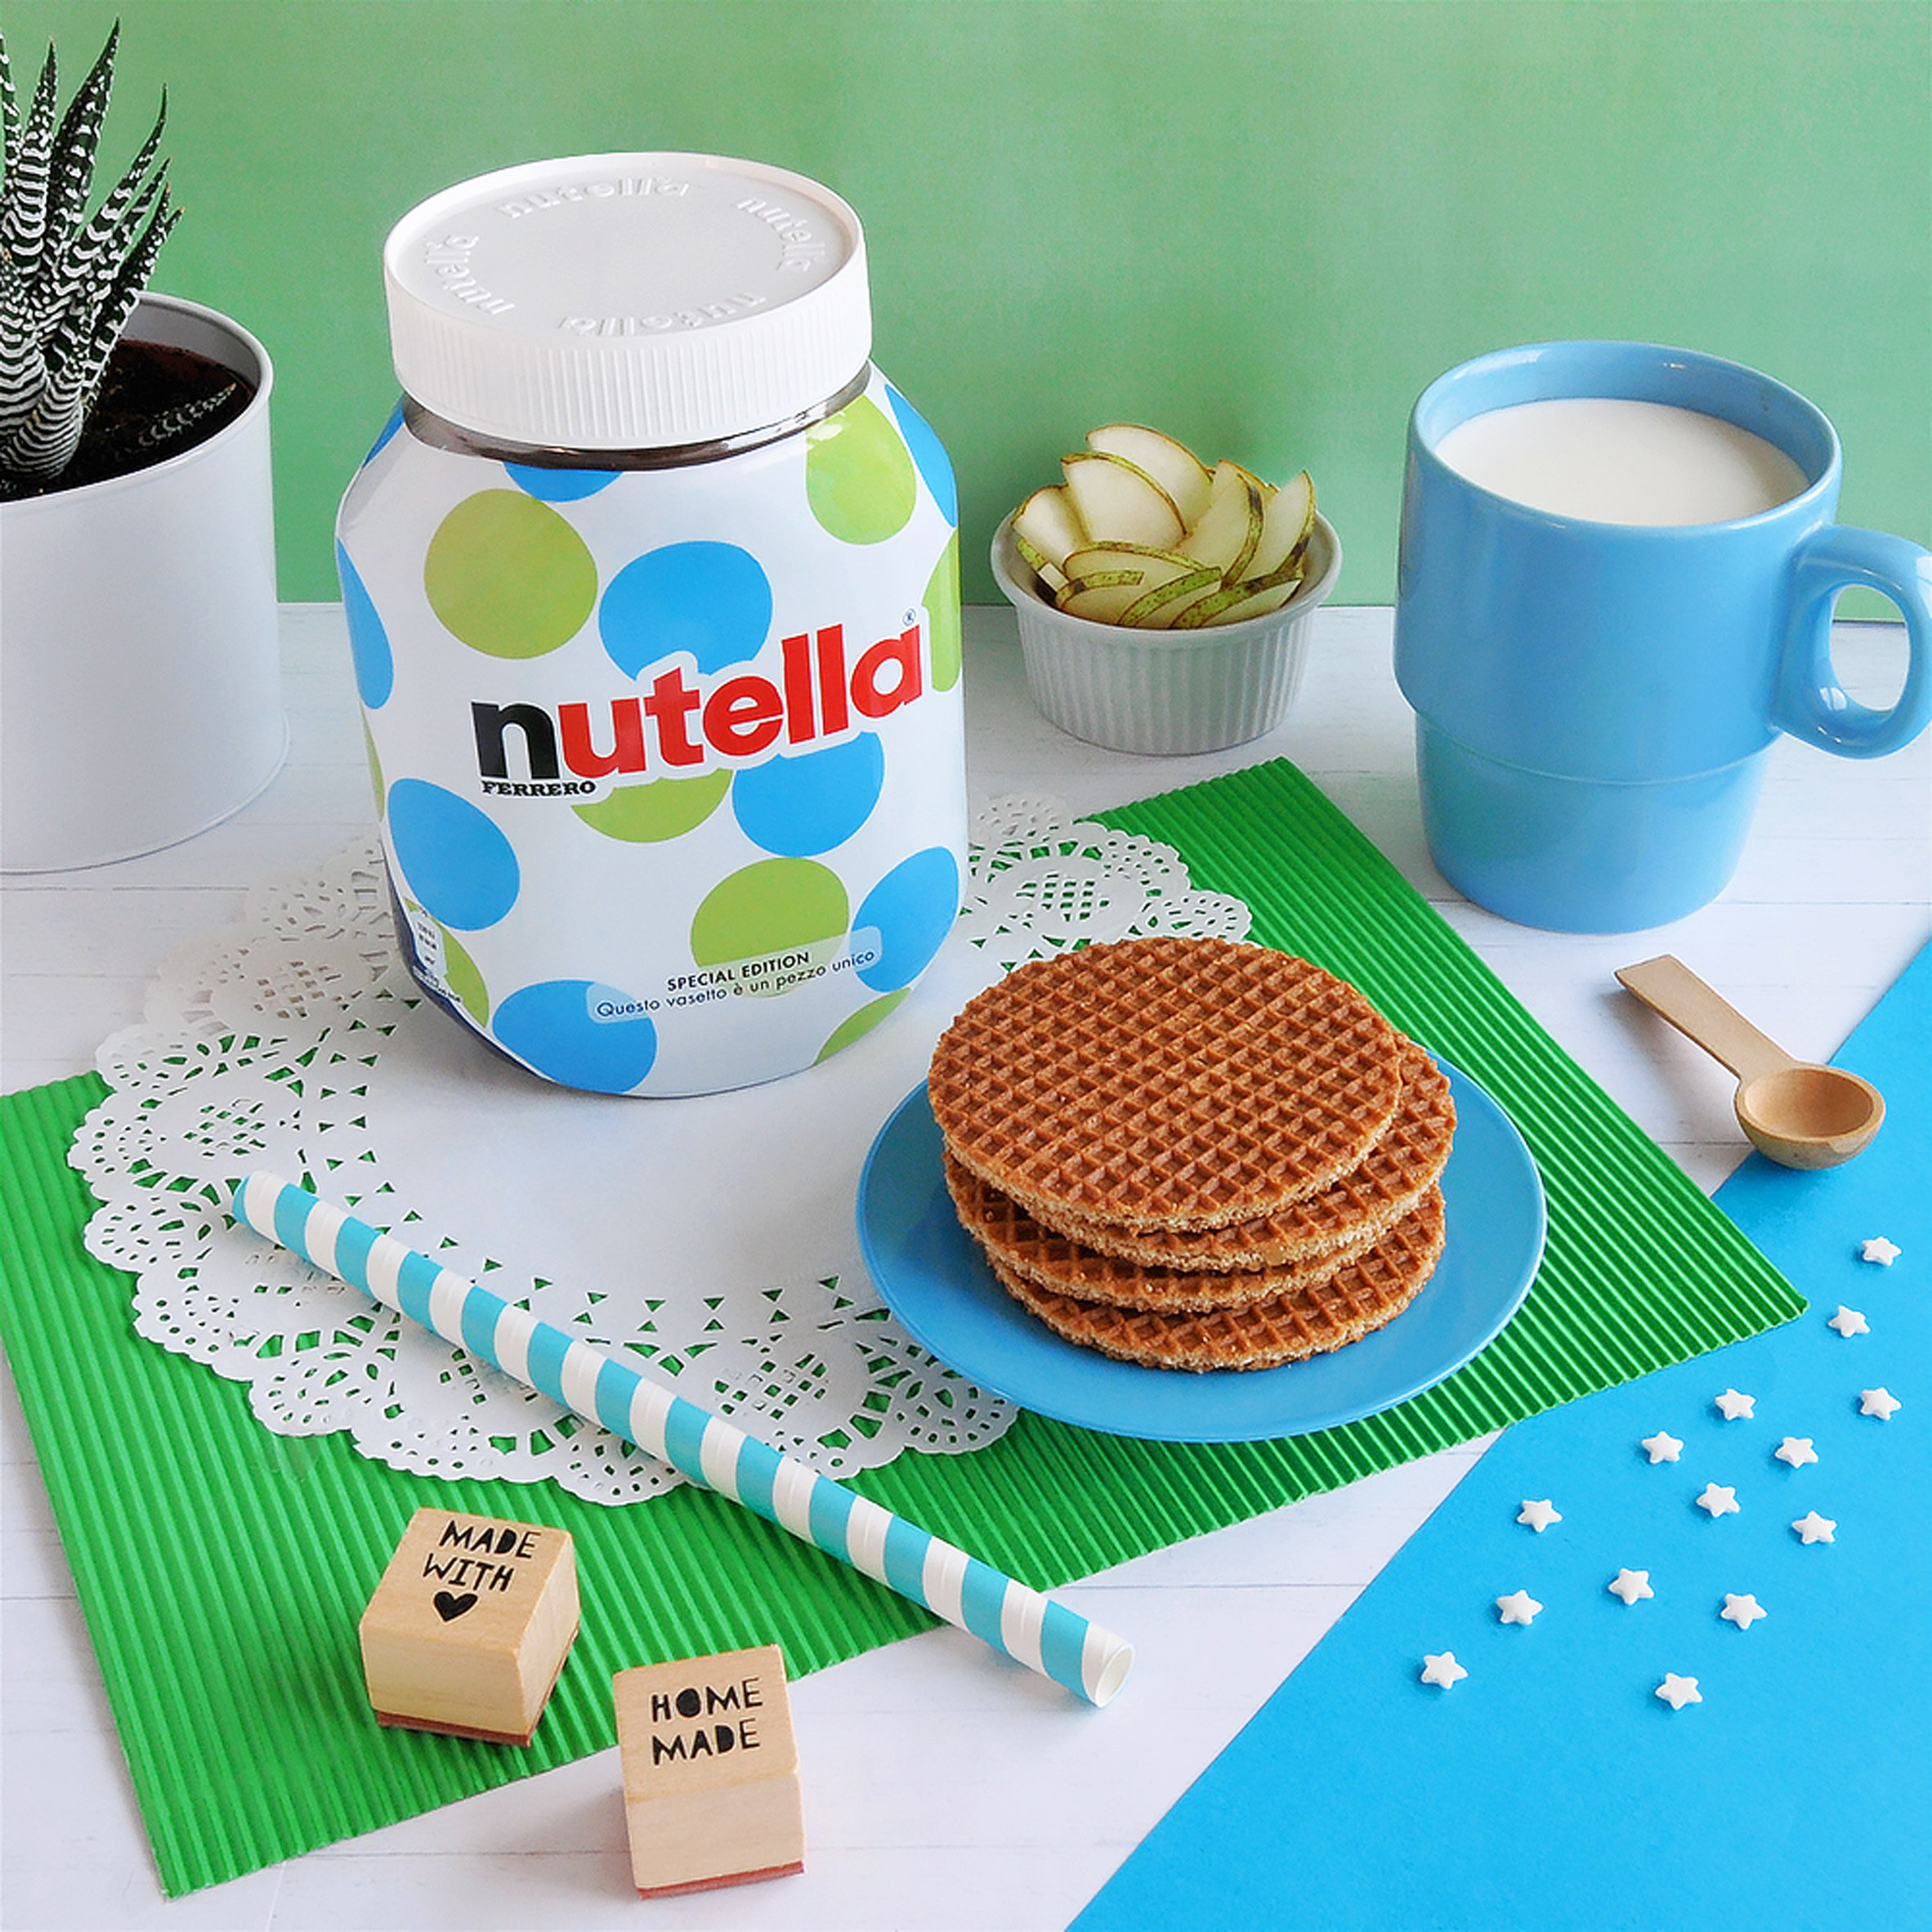 nutella-unica-packaging-design-products-_dezeen_2364_col_2